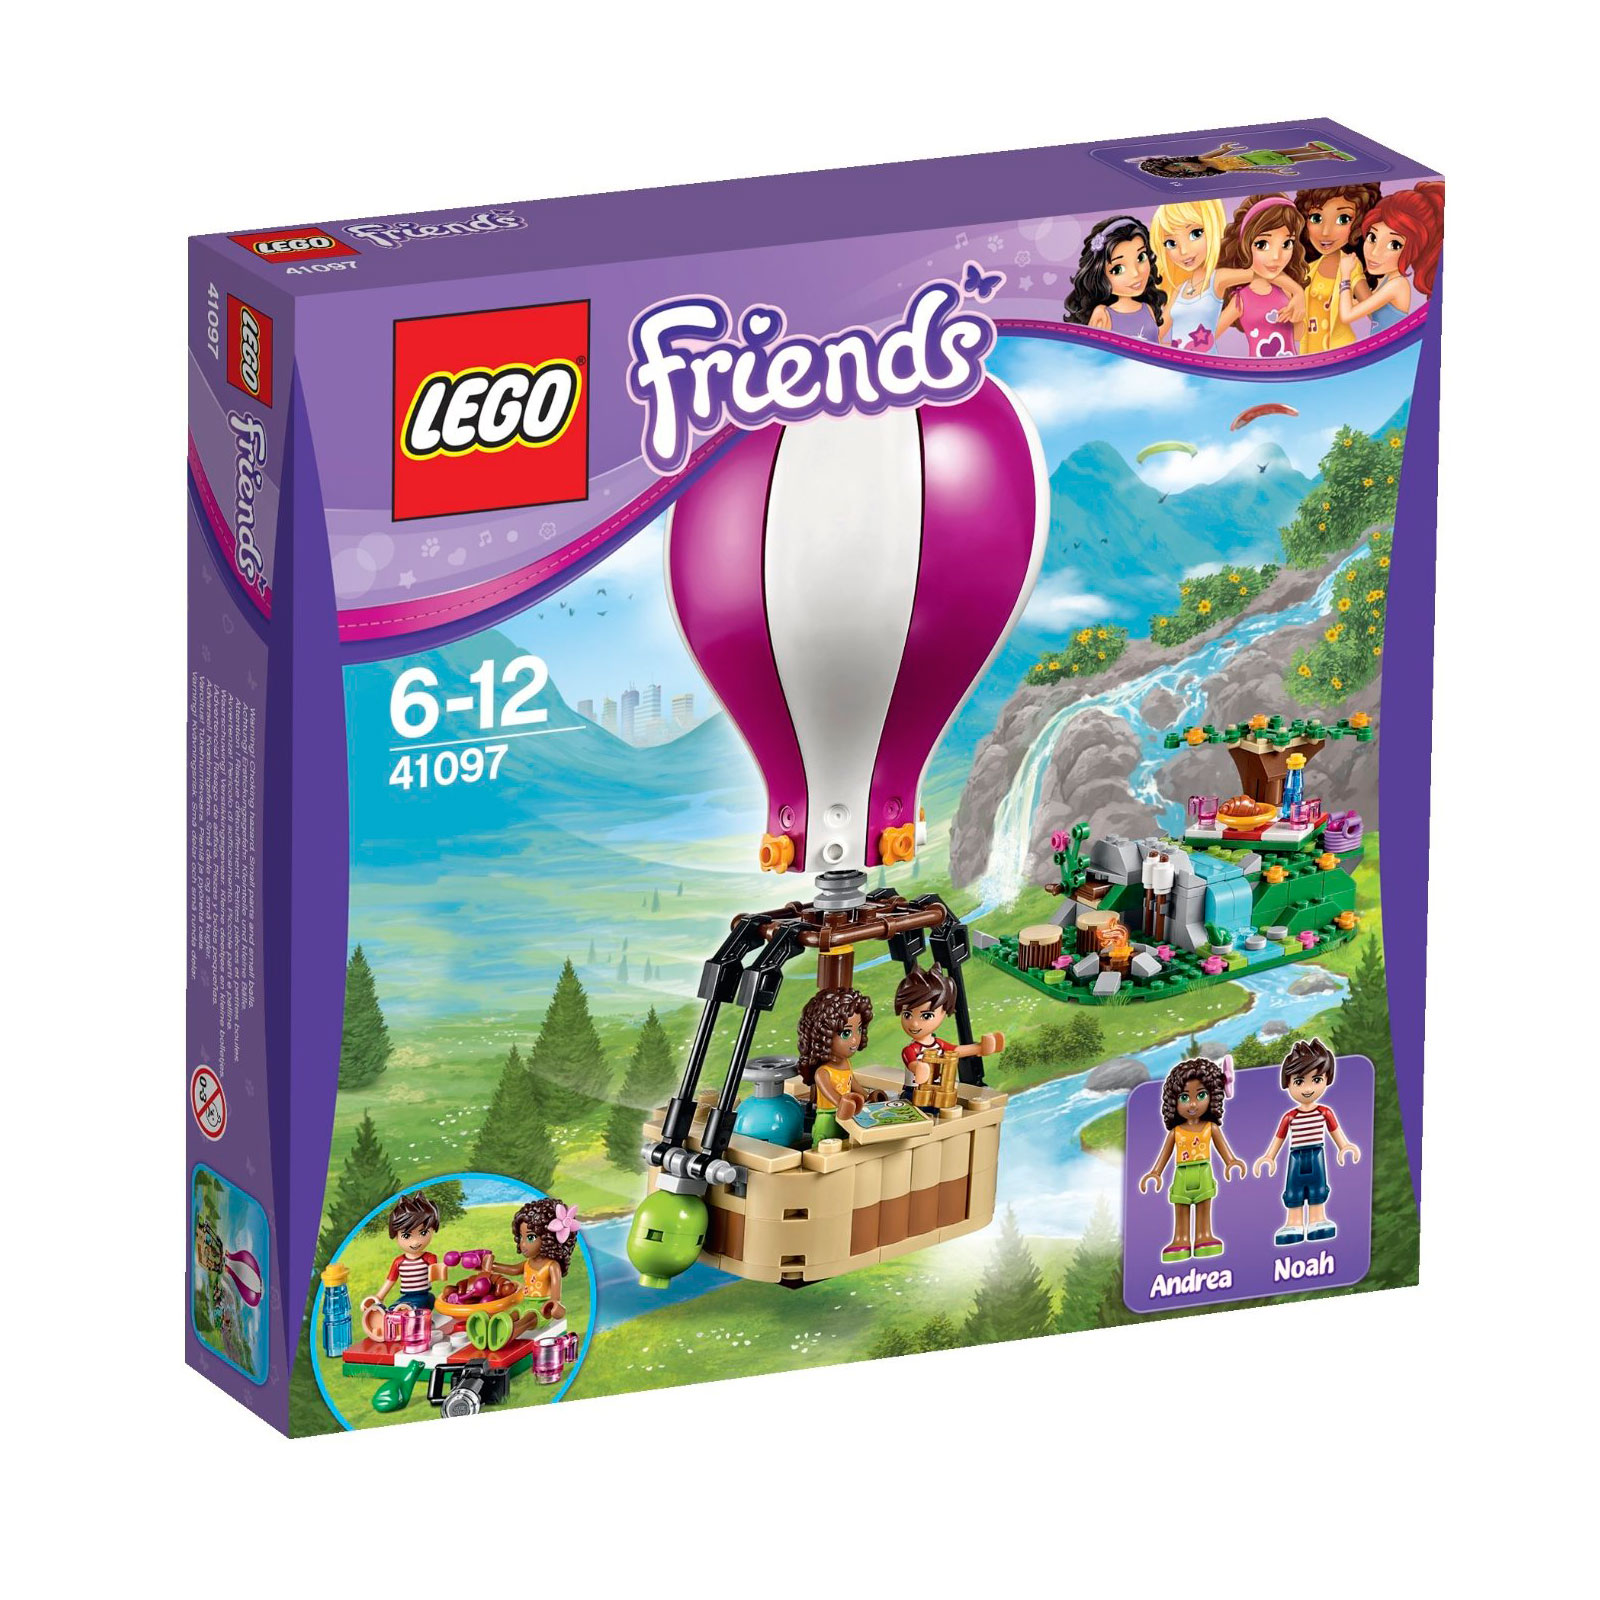 ����������� LEGO Friends 41097 ��������� ���